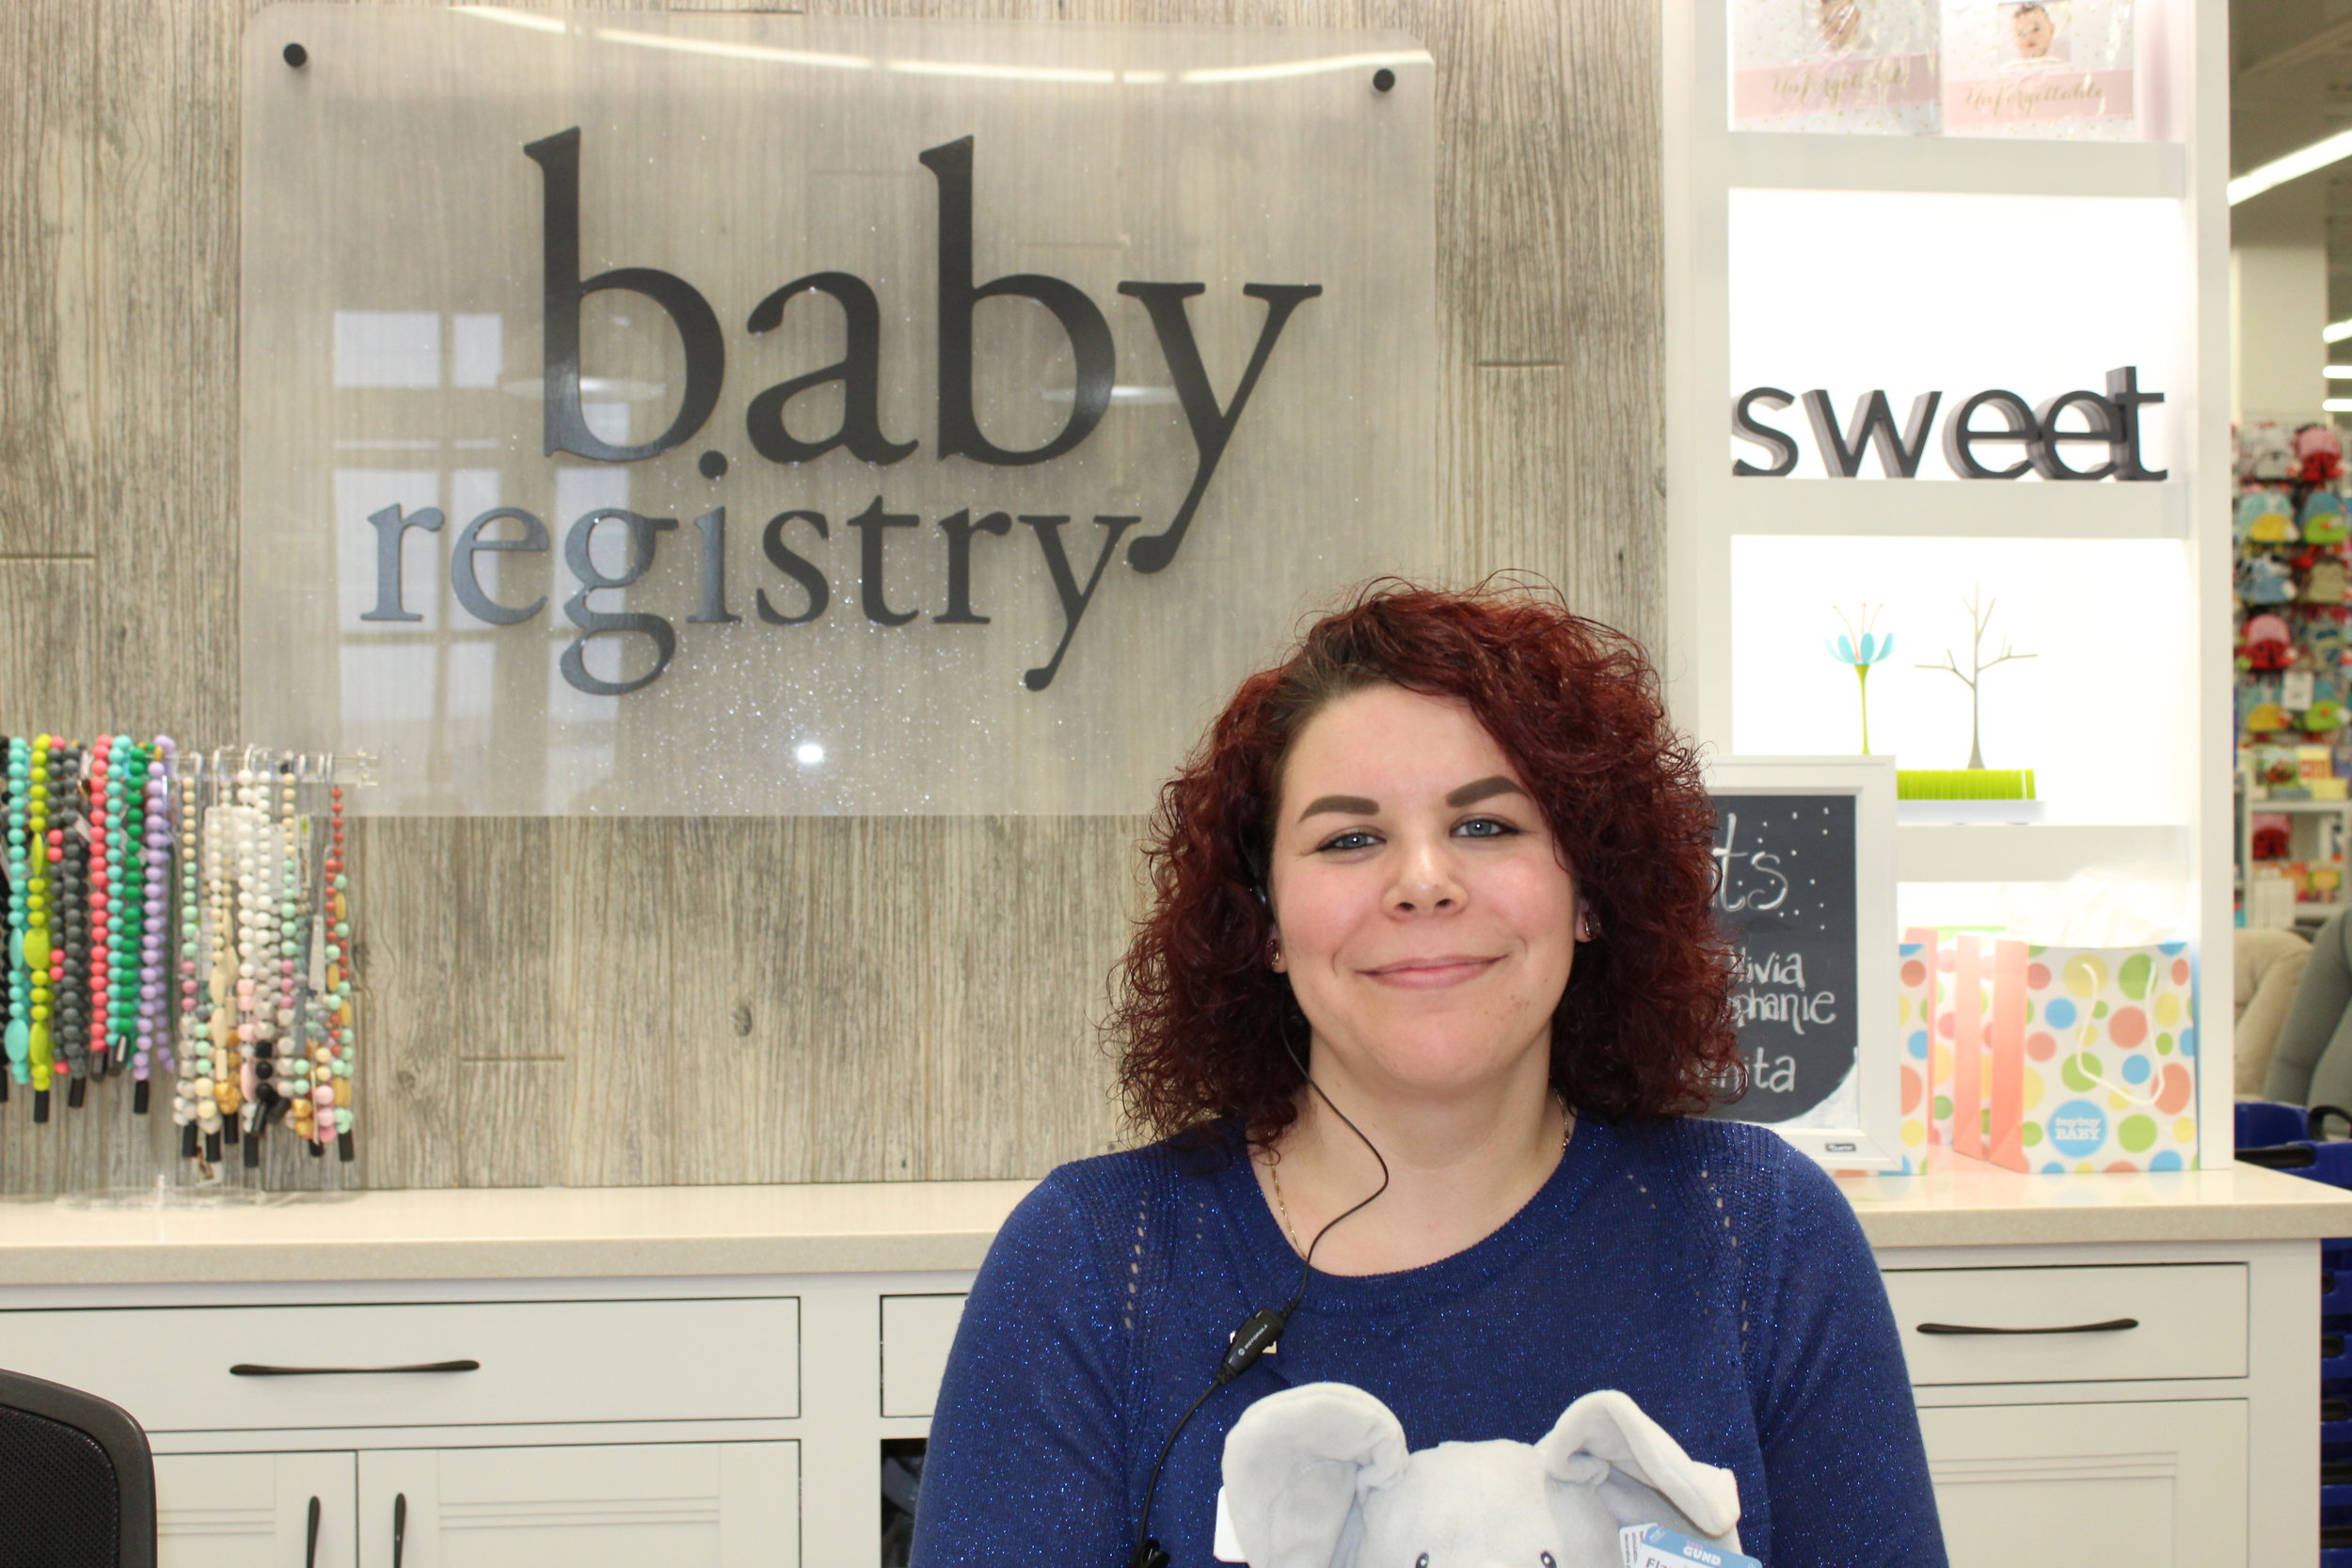 Friendly faces like Amber's are eager to help you create the perfect Baby Registry